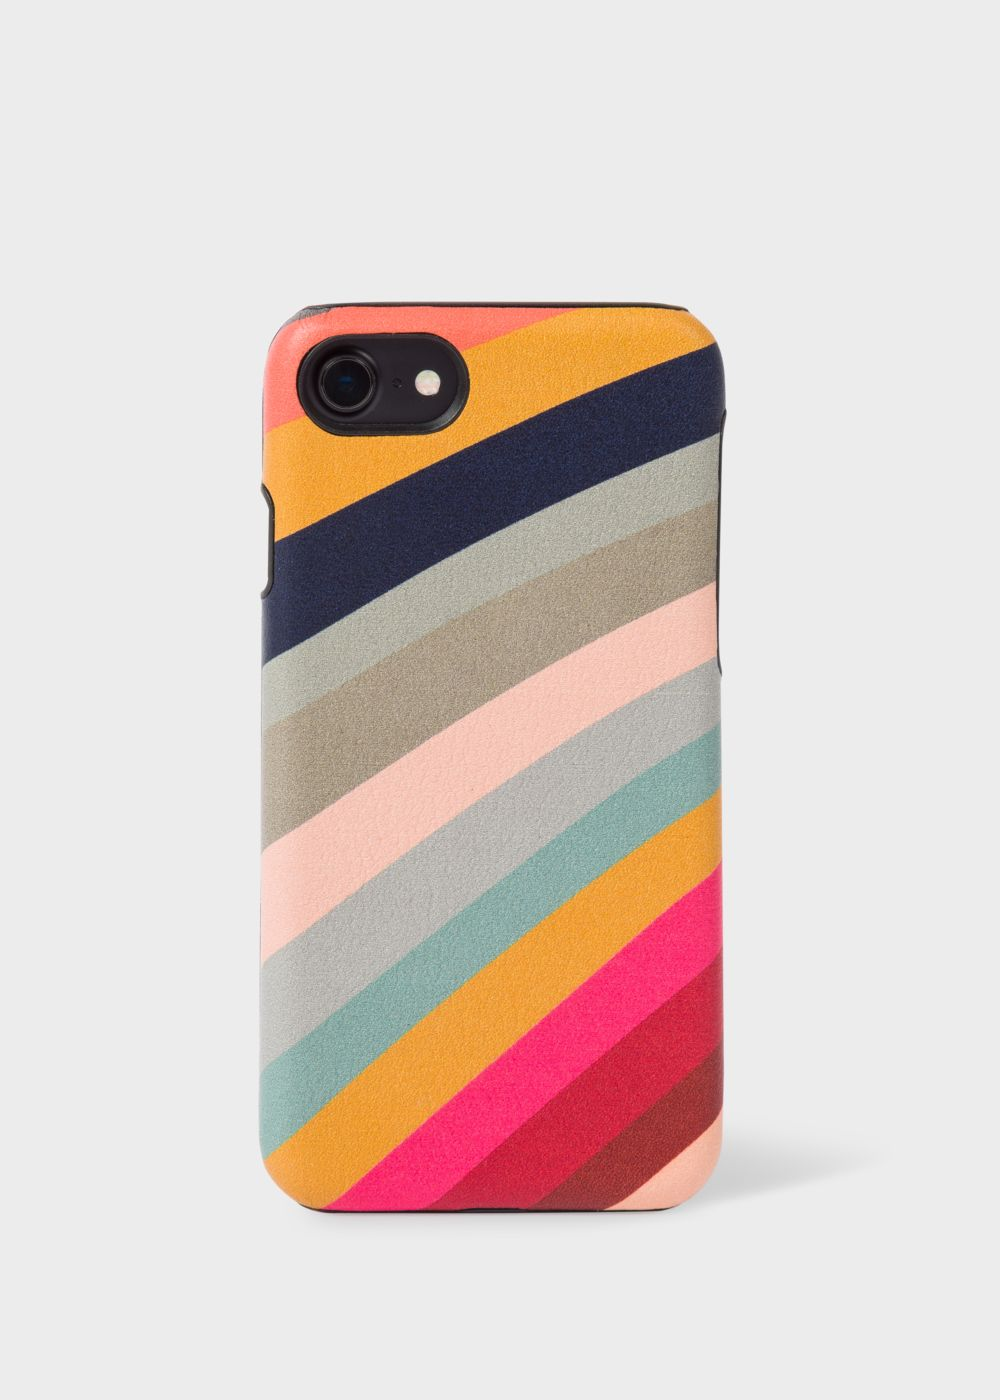 Case Paul swirl' print leather iphone 6/6s/7/8 case - paul smith denmark